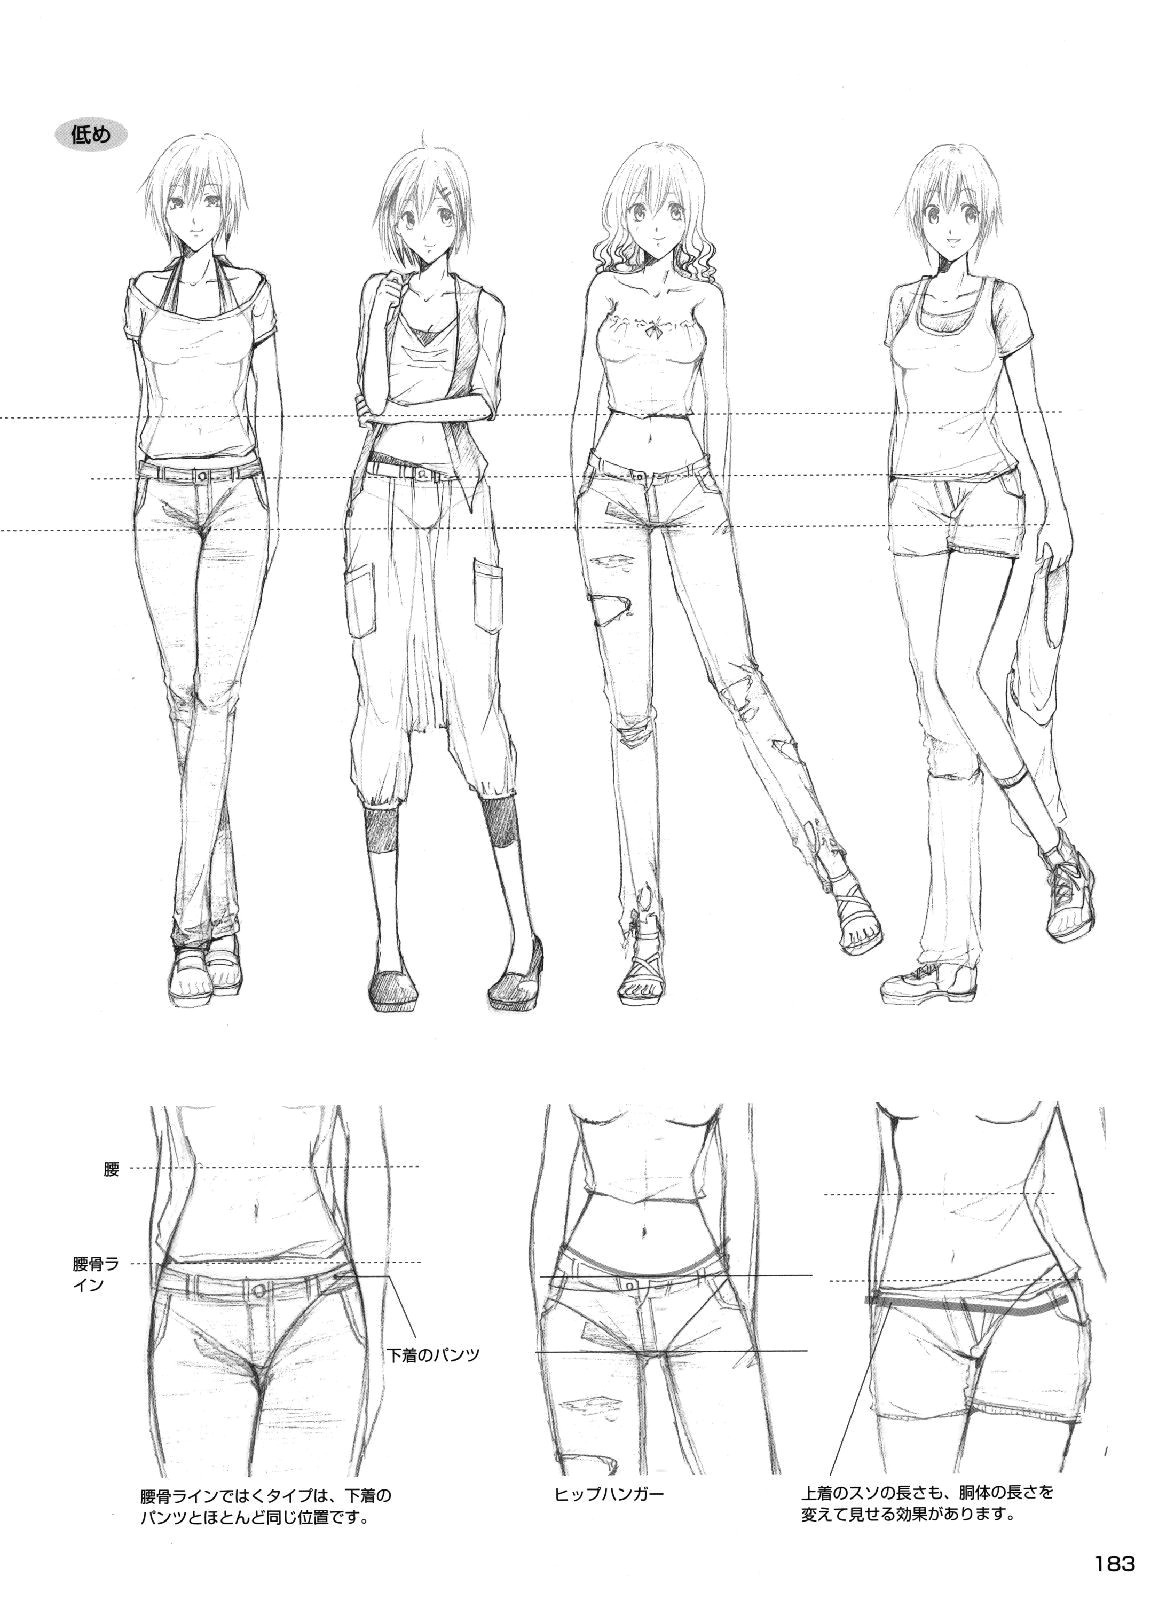 Drawing Anime Movement Help for Clothing Sketching Manga Drawing Tips Clothing Fabric